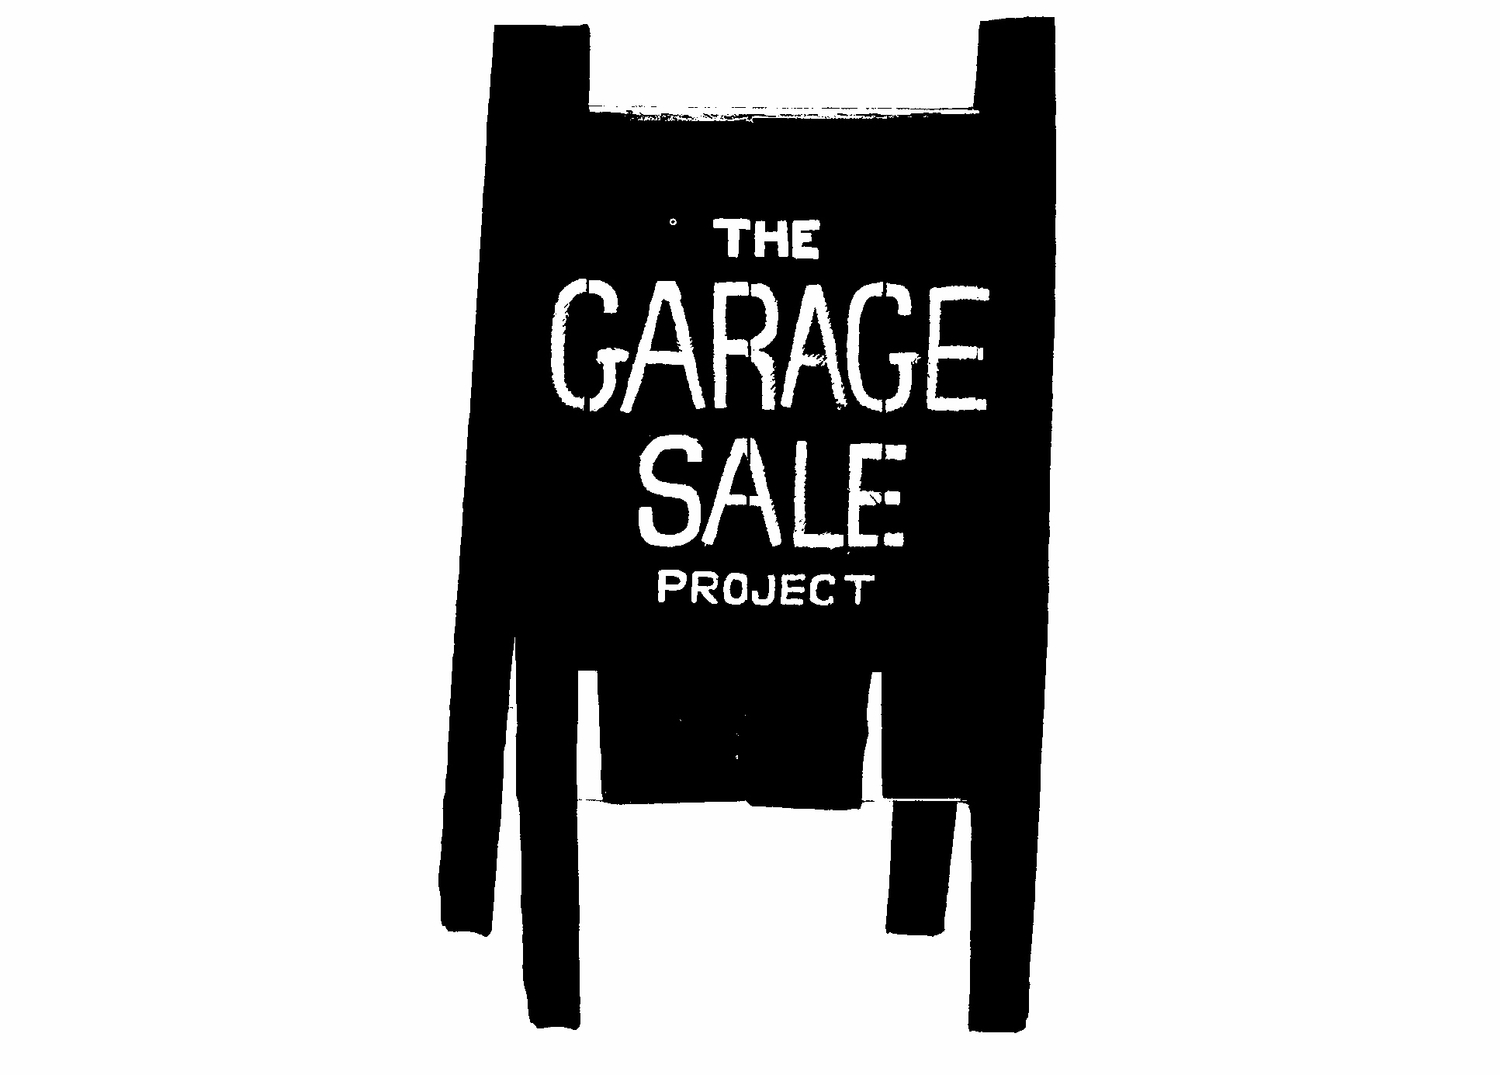 THE GARAGE SALE PROJECT